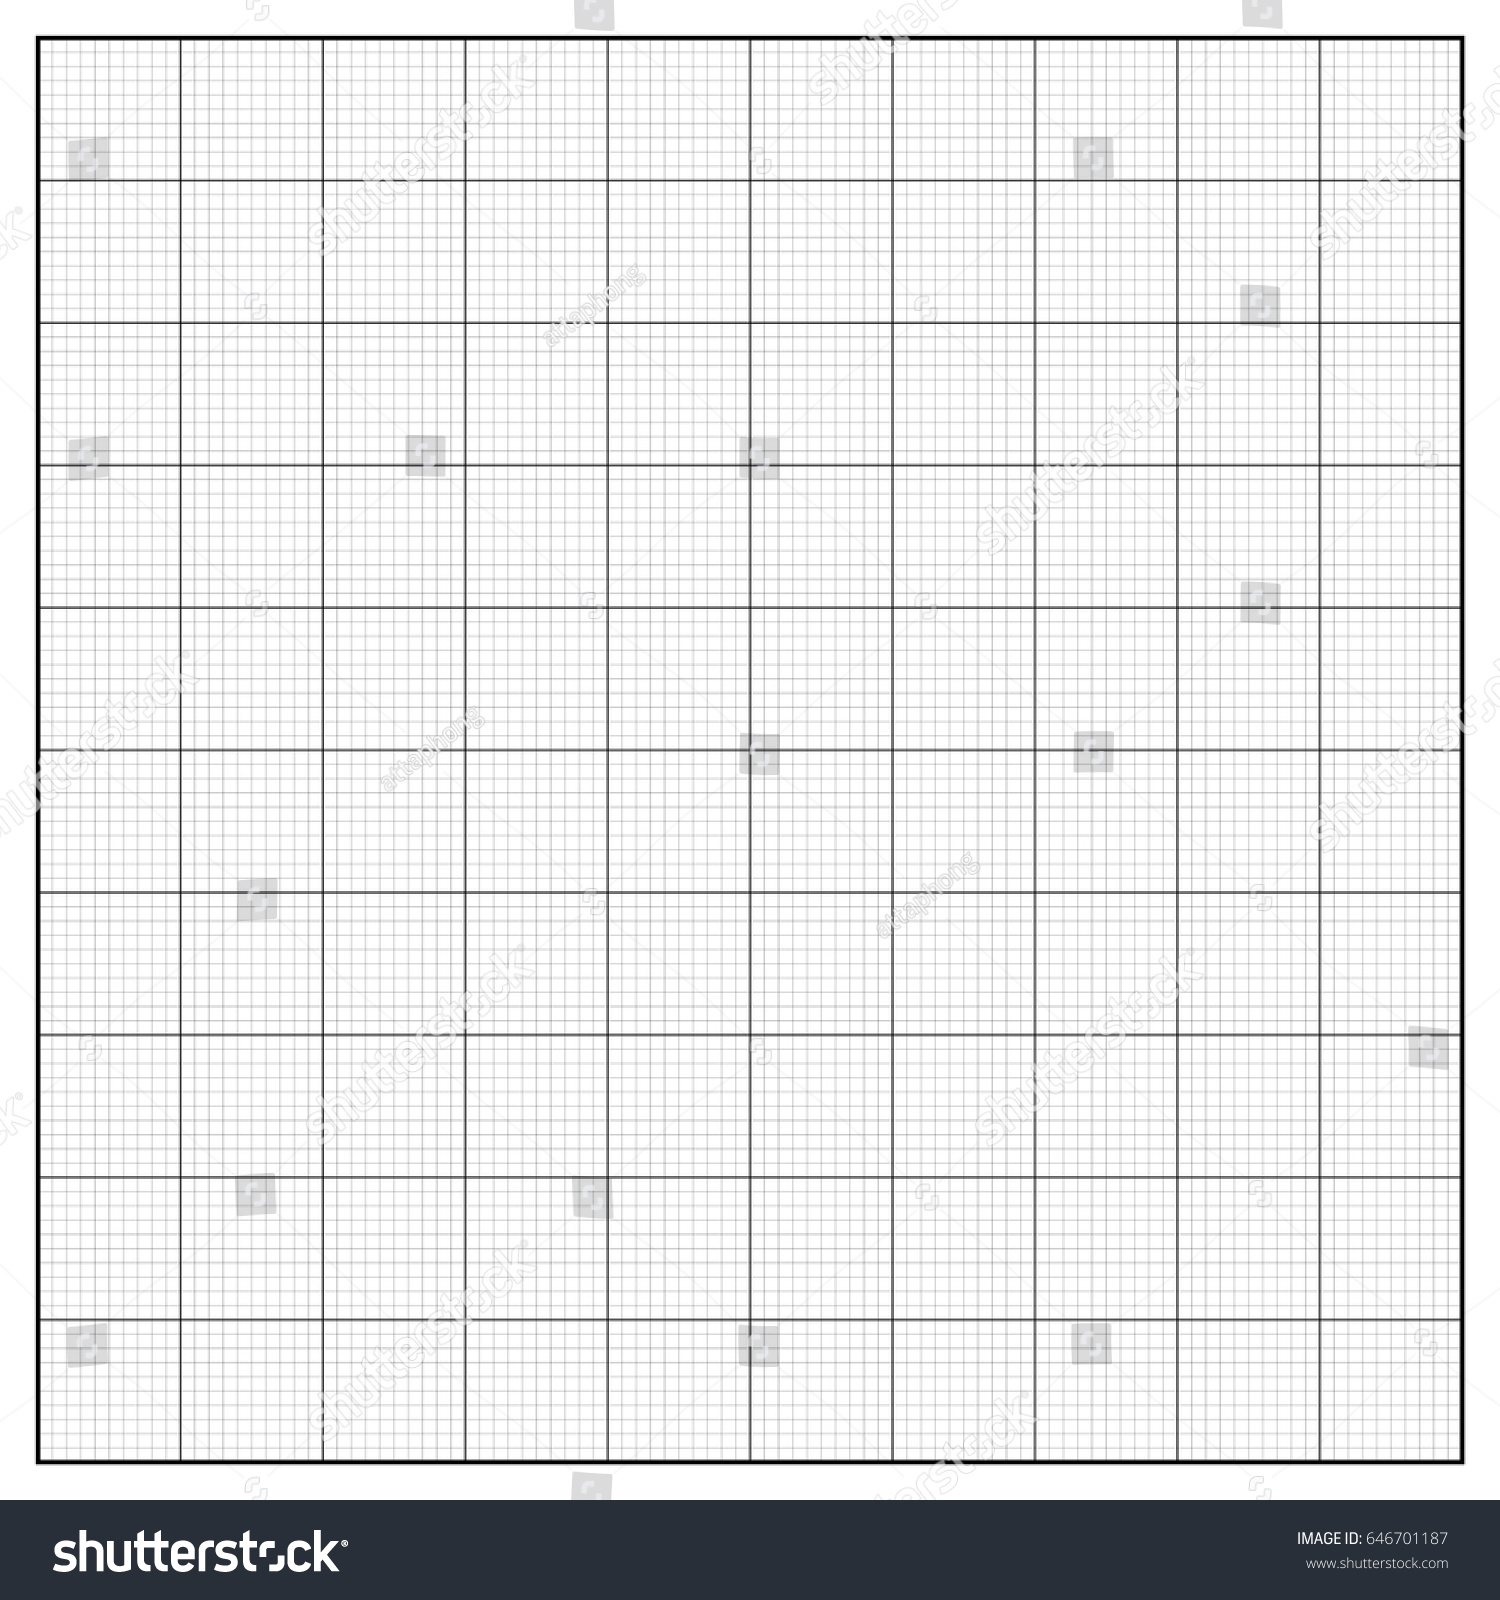 worksheet X And Y Axis Graph Paper graph paper creator equation of lines worksheet math with x and y axis fact families worksheets stock vector coordinate grid squared 646701187 gra